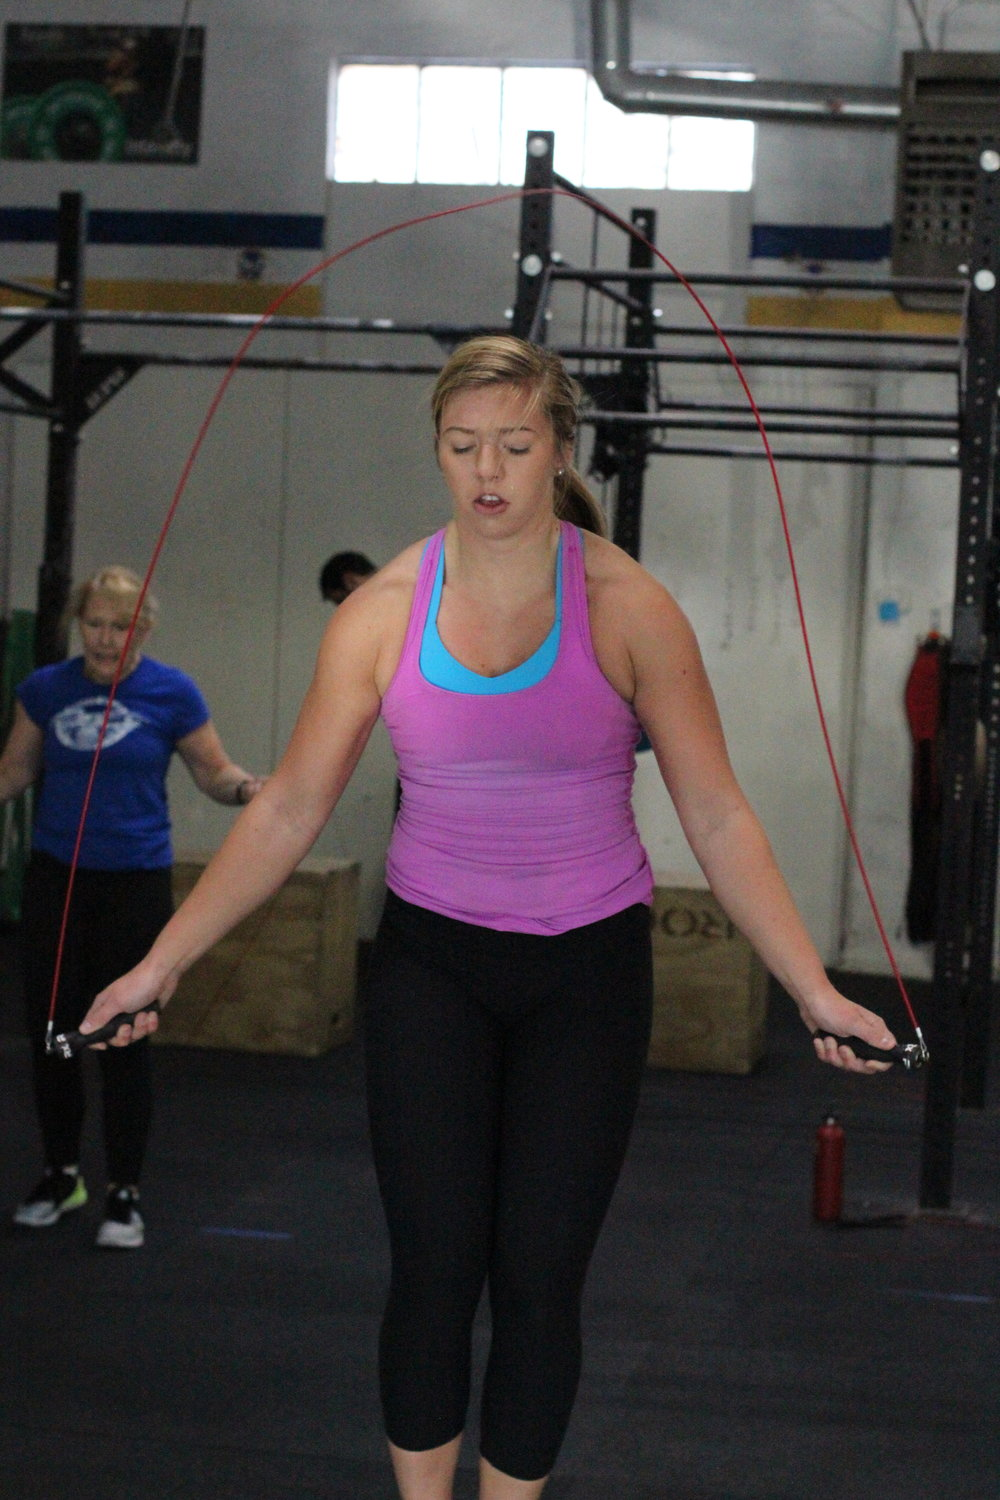 PVCF athlete, Bronwyn Shinnick gets in those double unders! Awesome work!